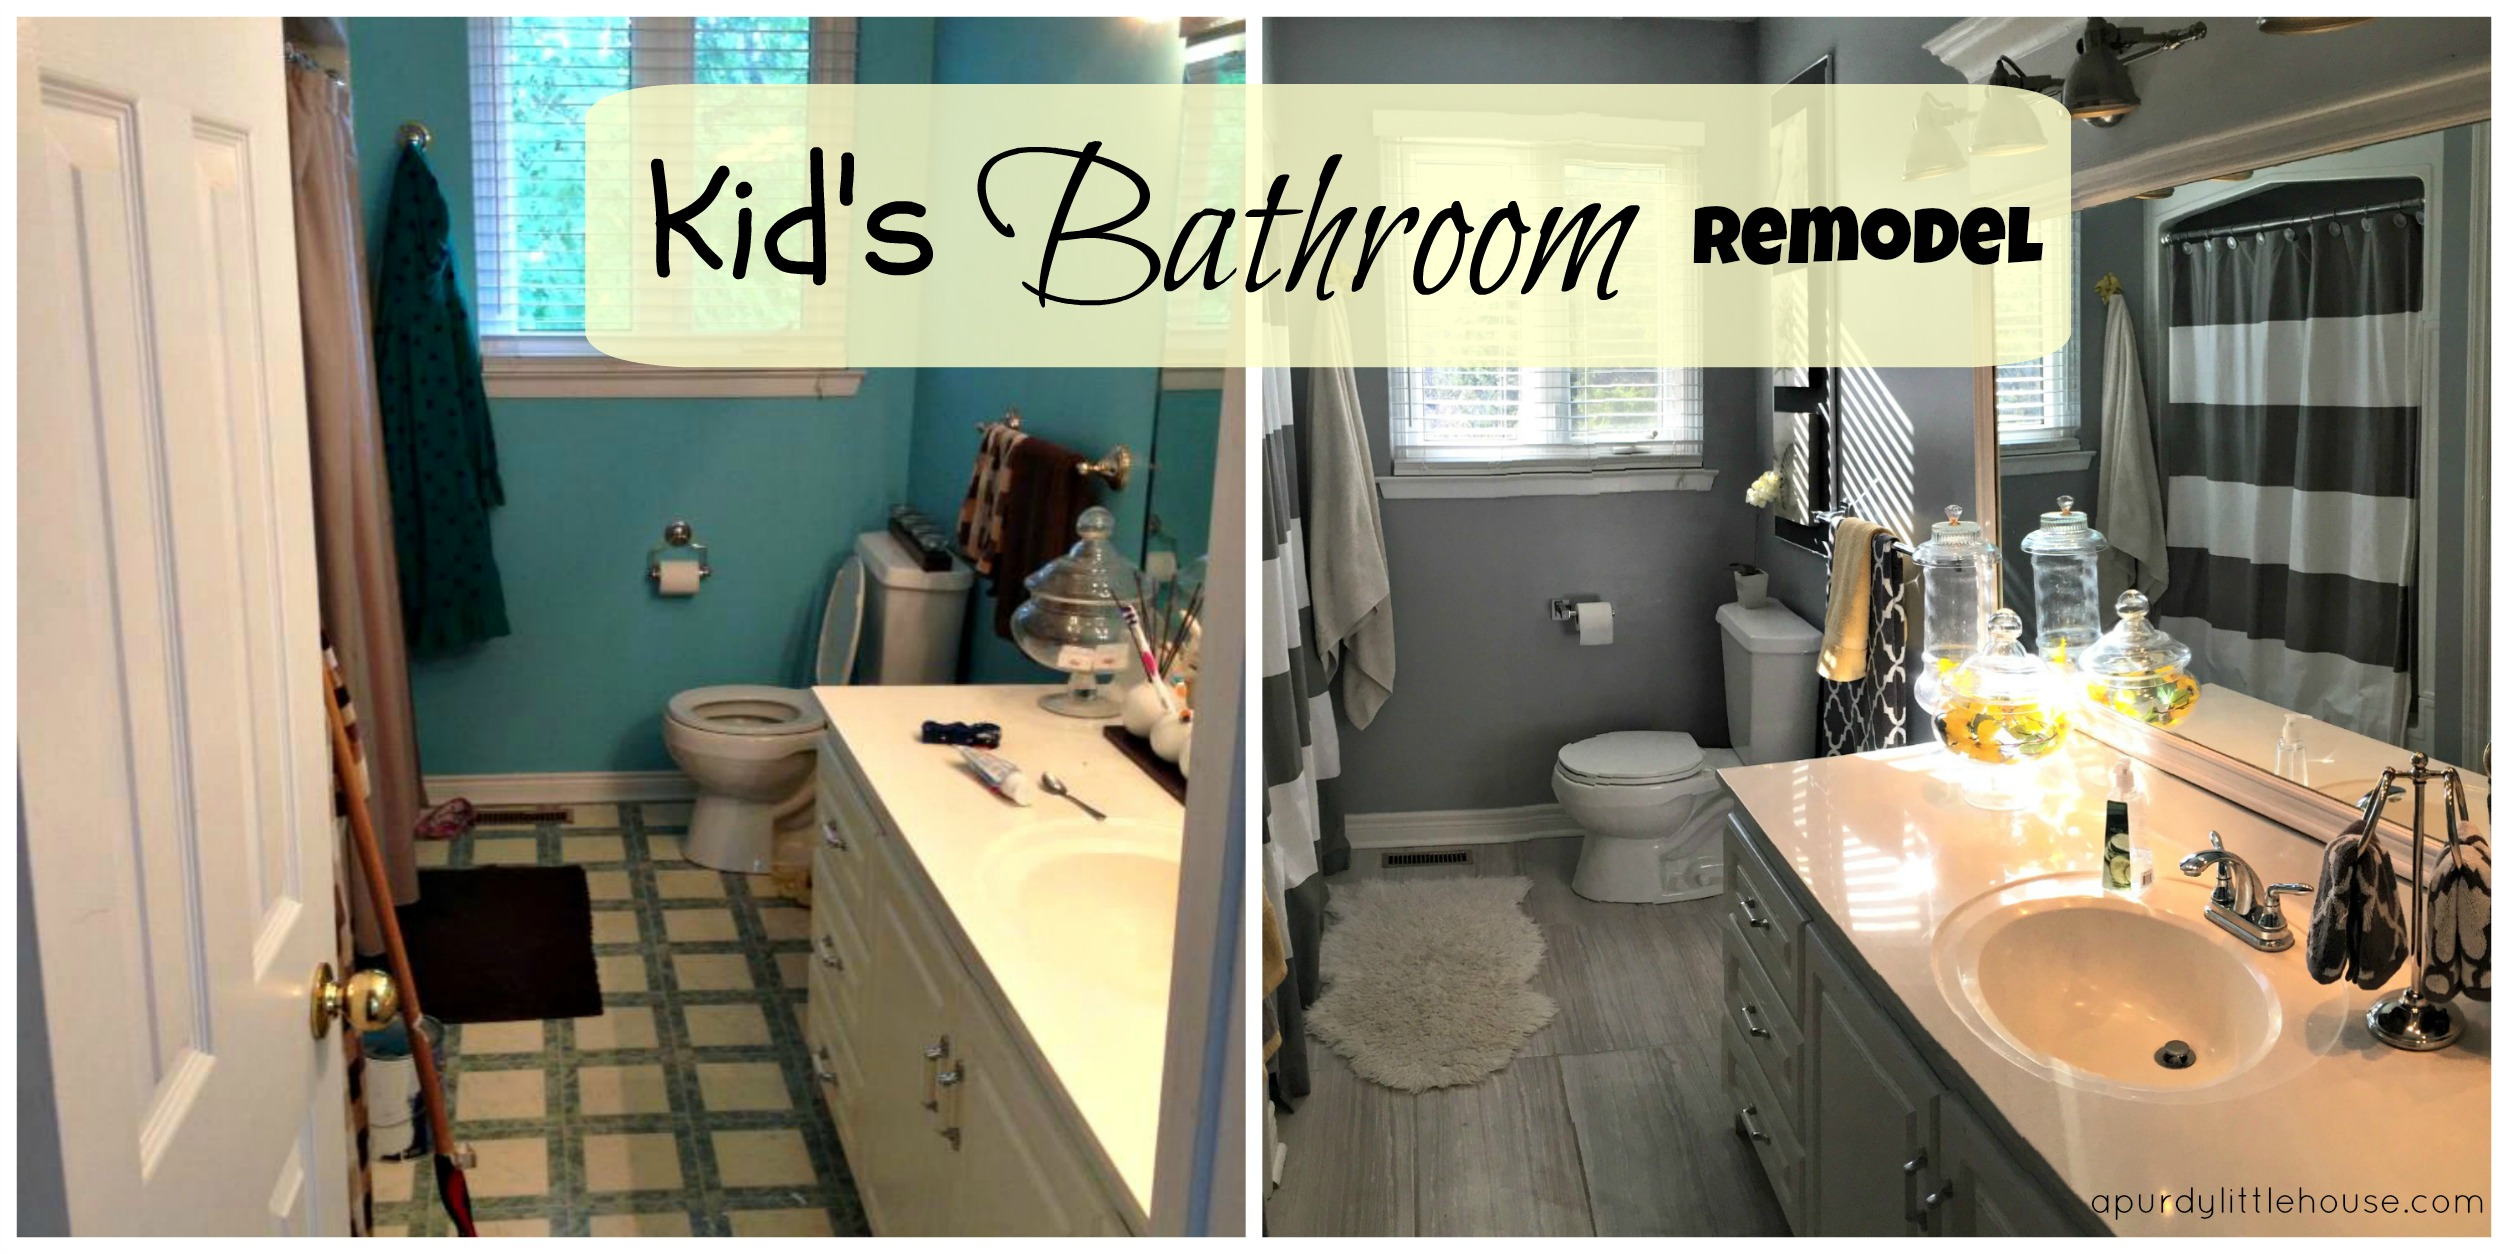 Kid s Bathroom Remodel a purdy little house